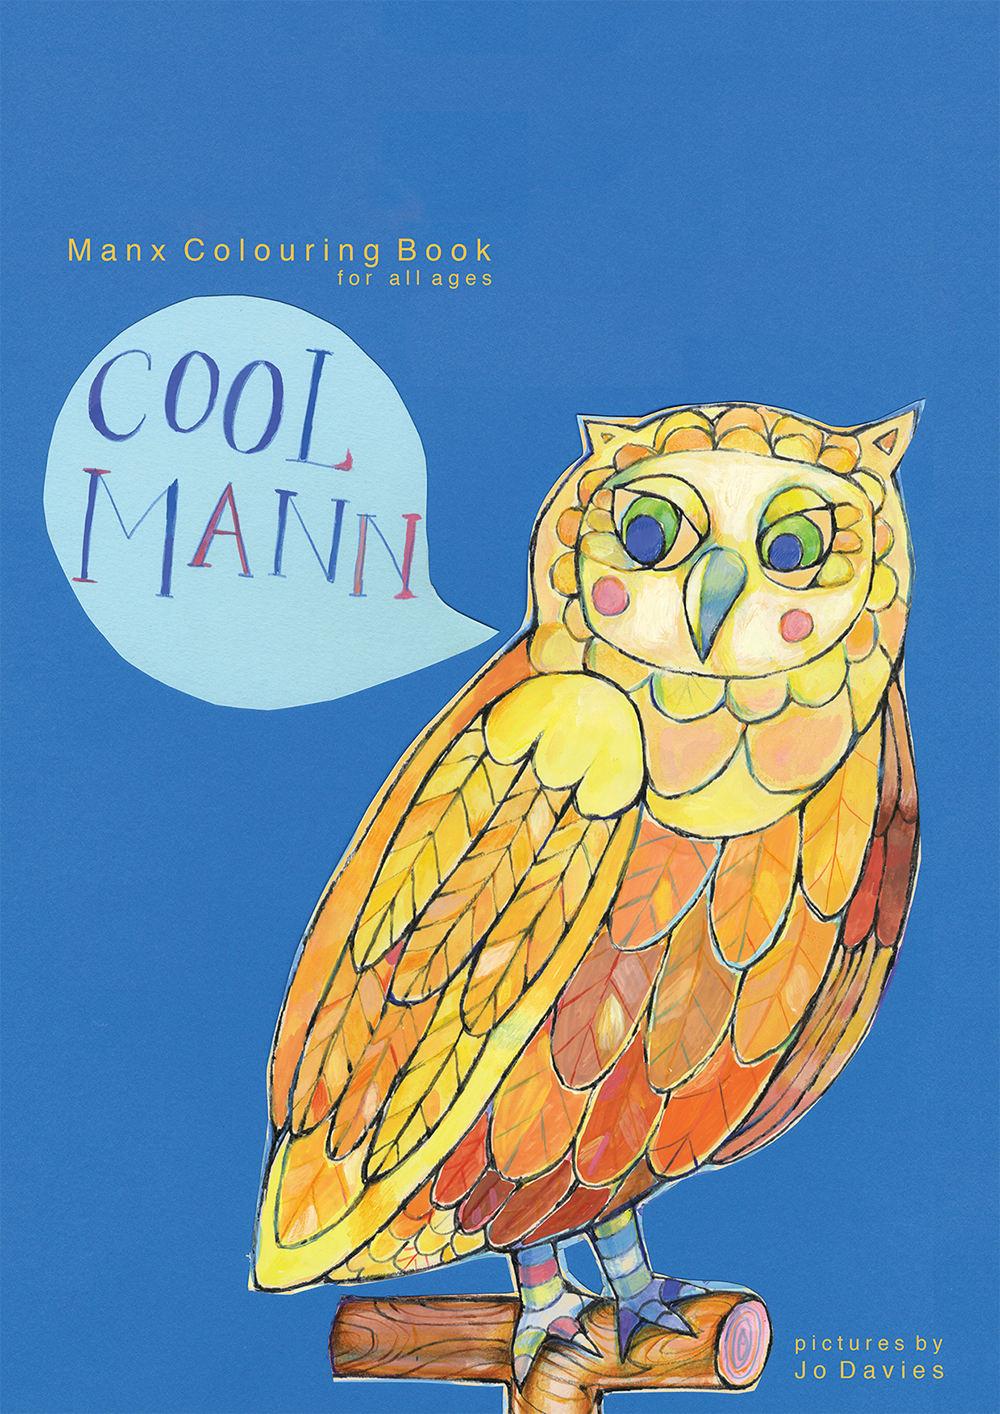 cool mann cover web.jpg